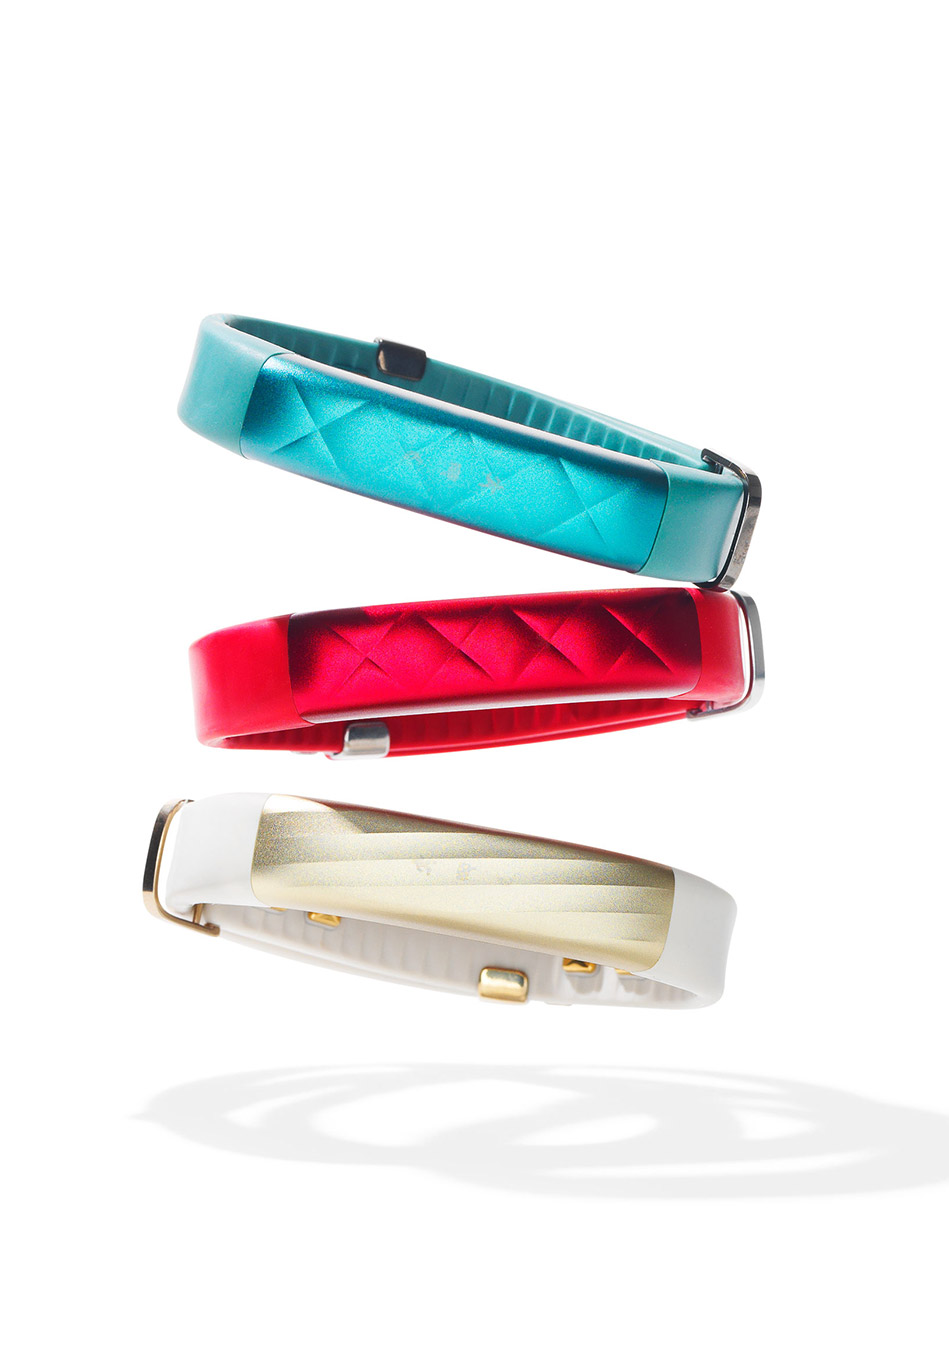 Jawbone UP3 in Teal Cross, Ruby Cross, and Sand Twist